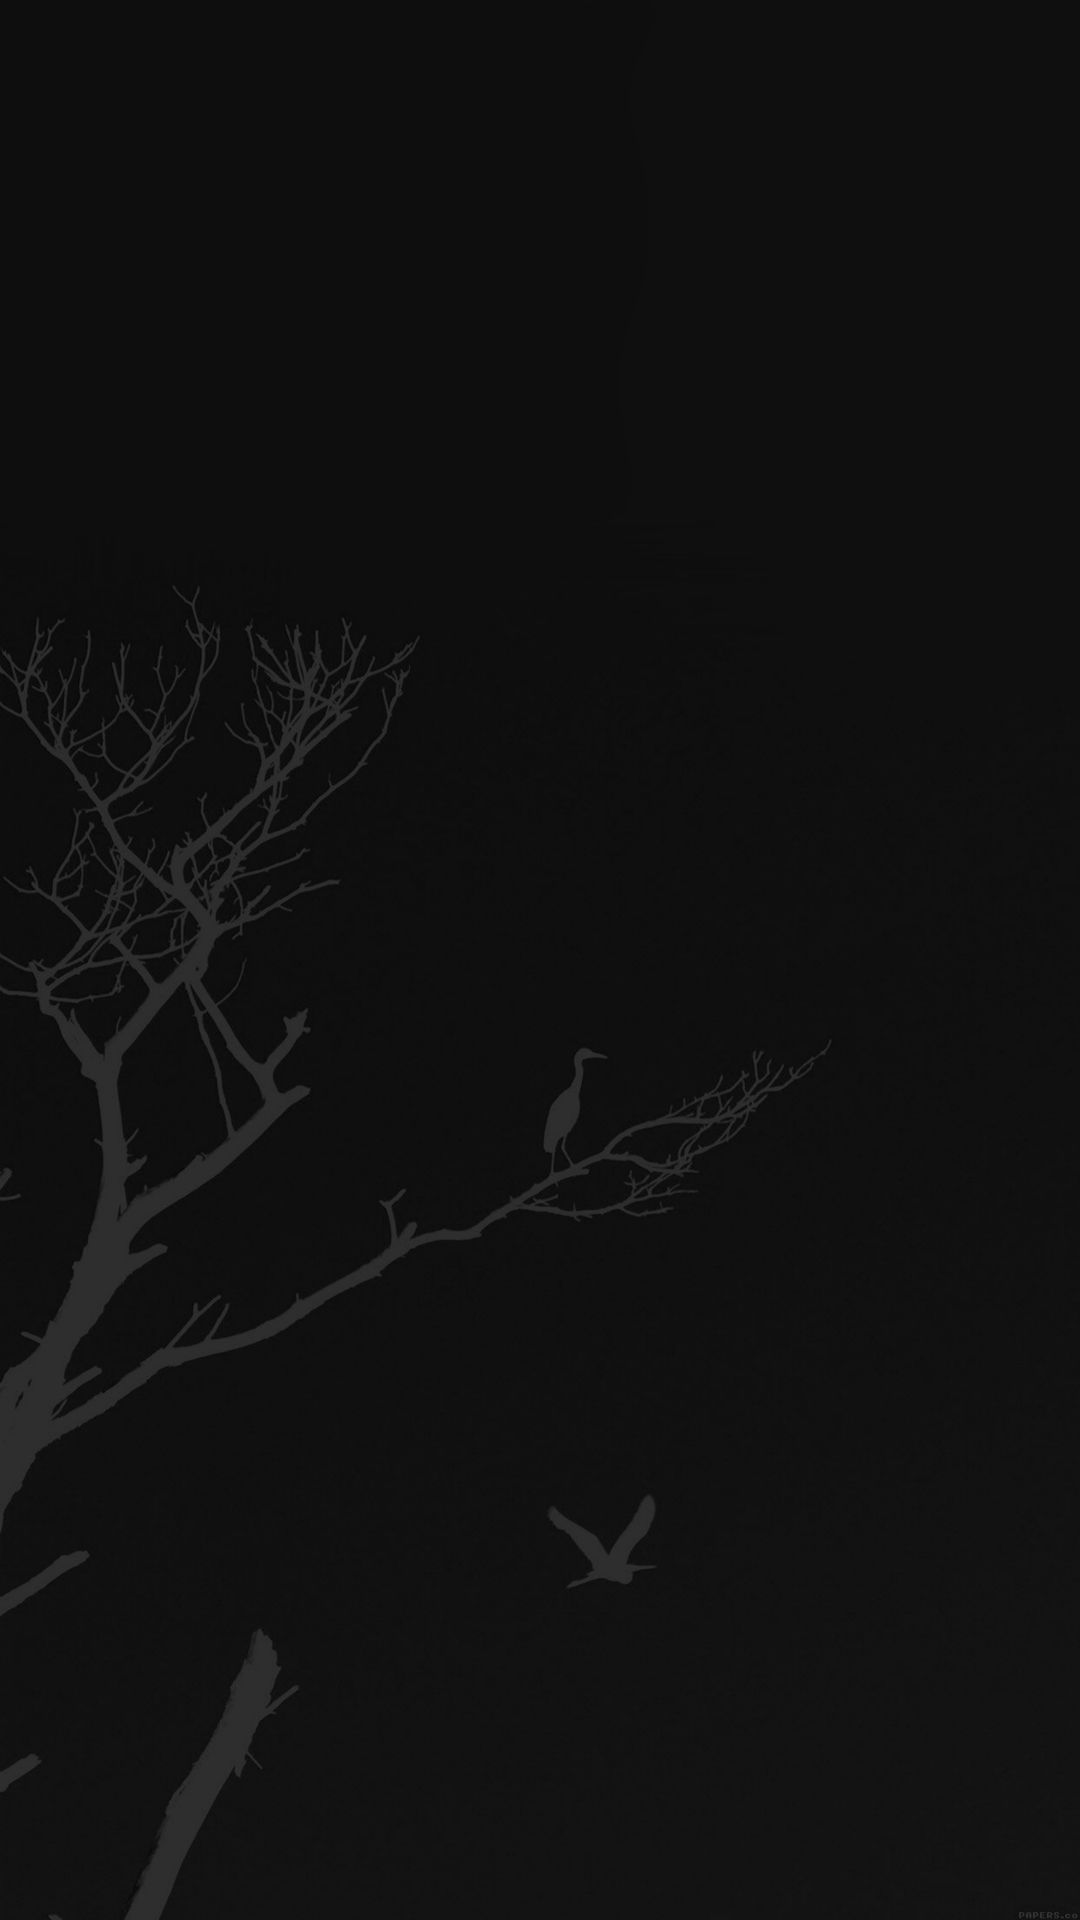 Black And White Minimalist Iphone Wallpapers Top Free